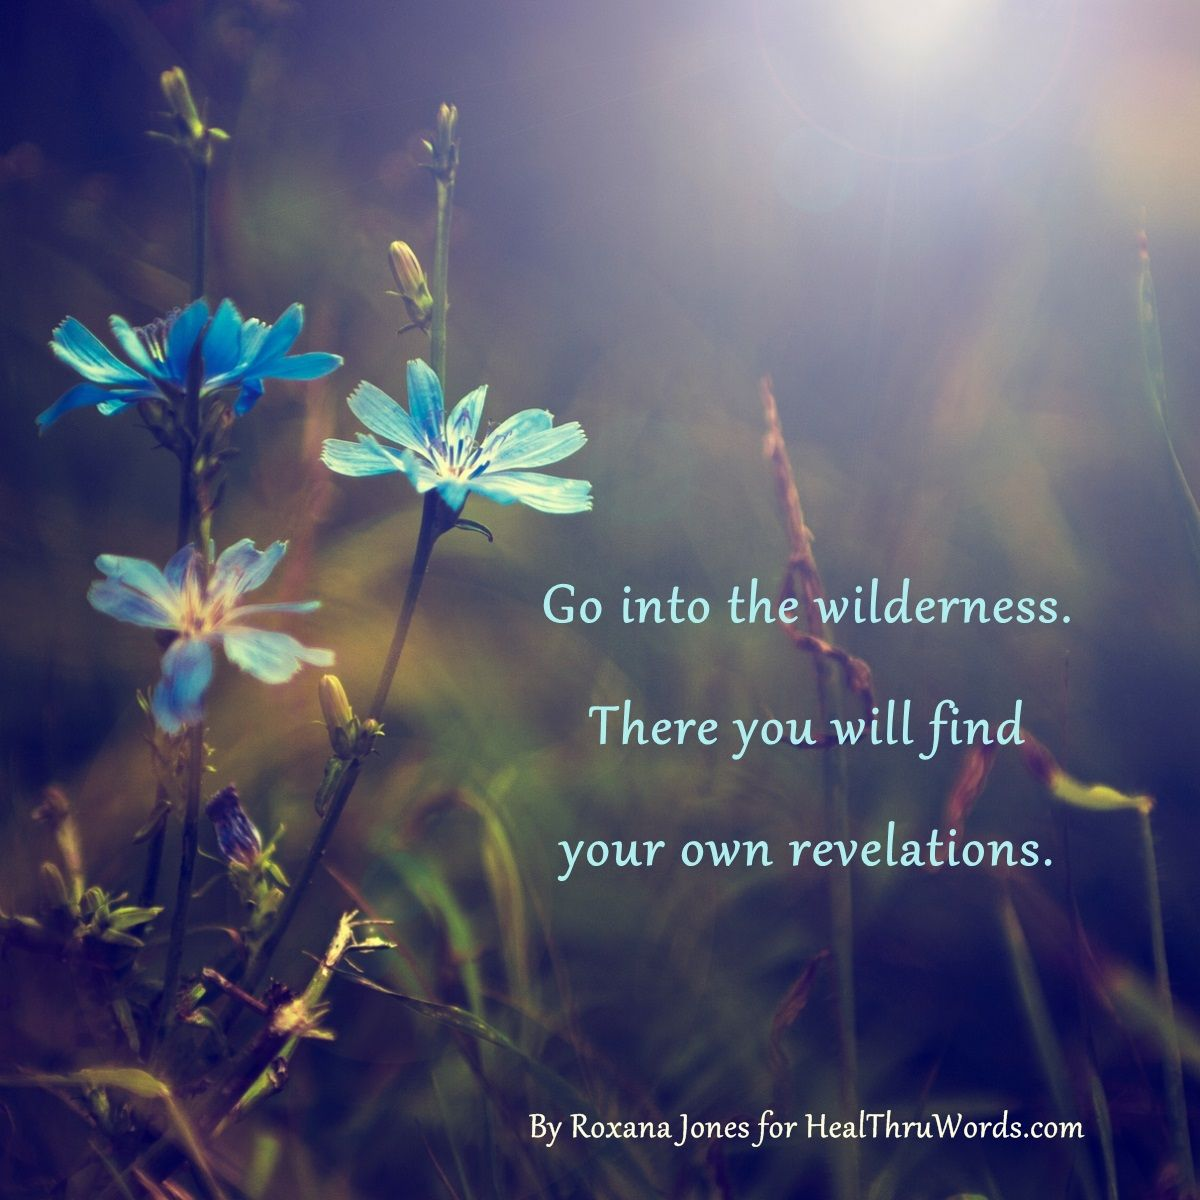 Quotes Nature Go Into The Wildernessthere You Will Find Your Own Revelations